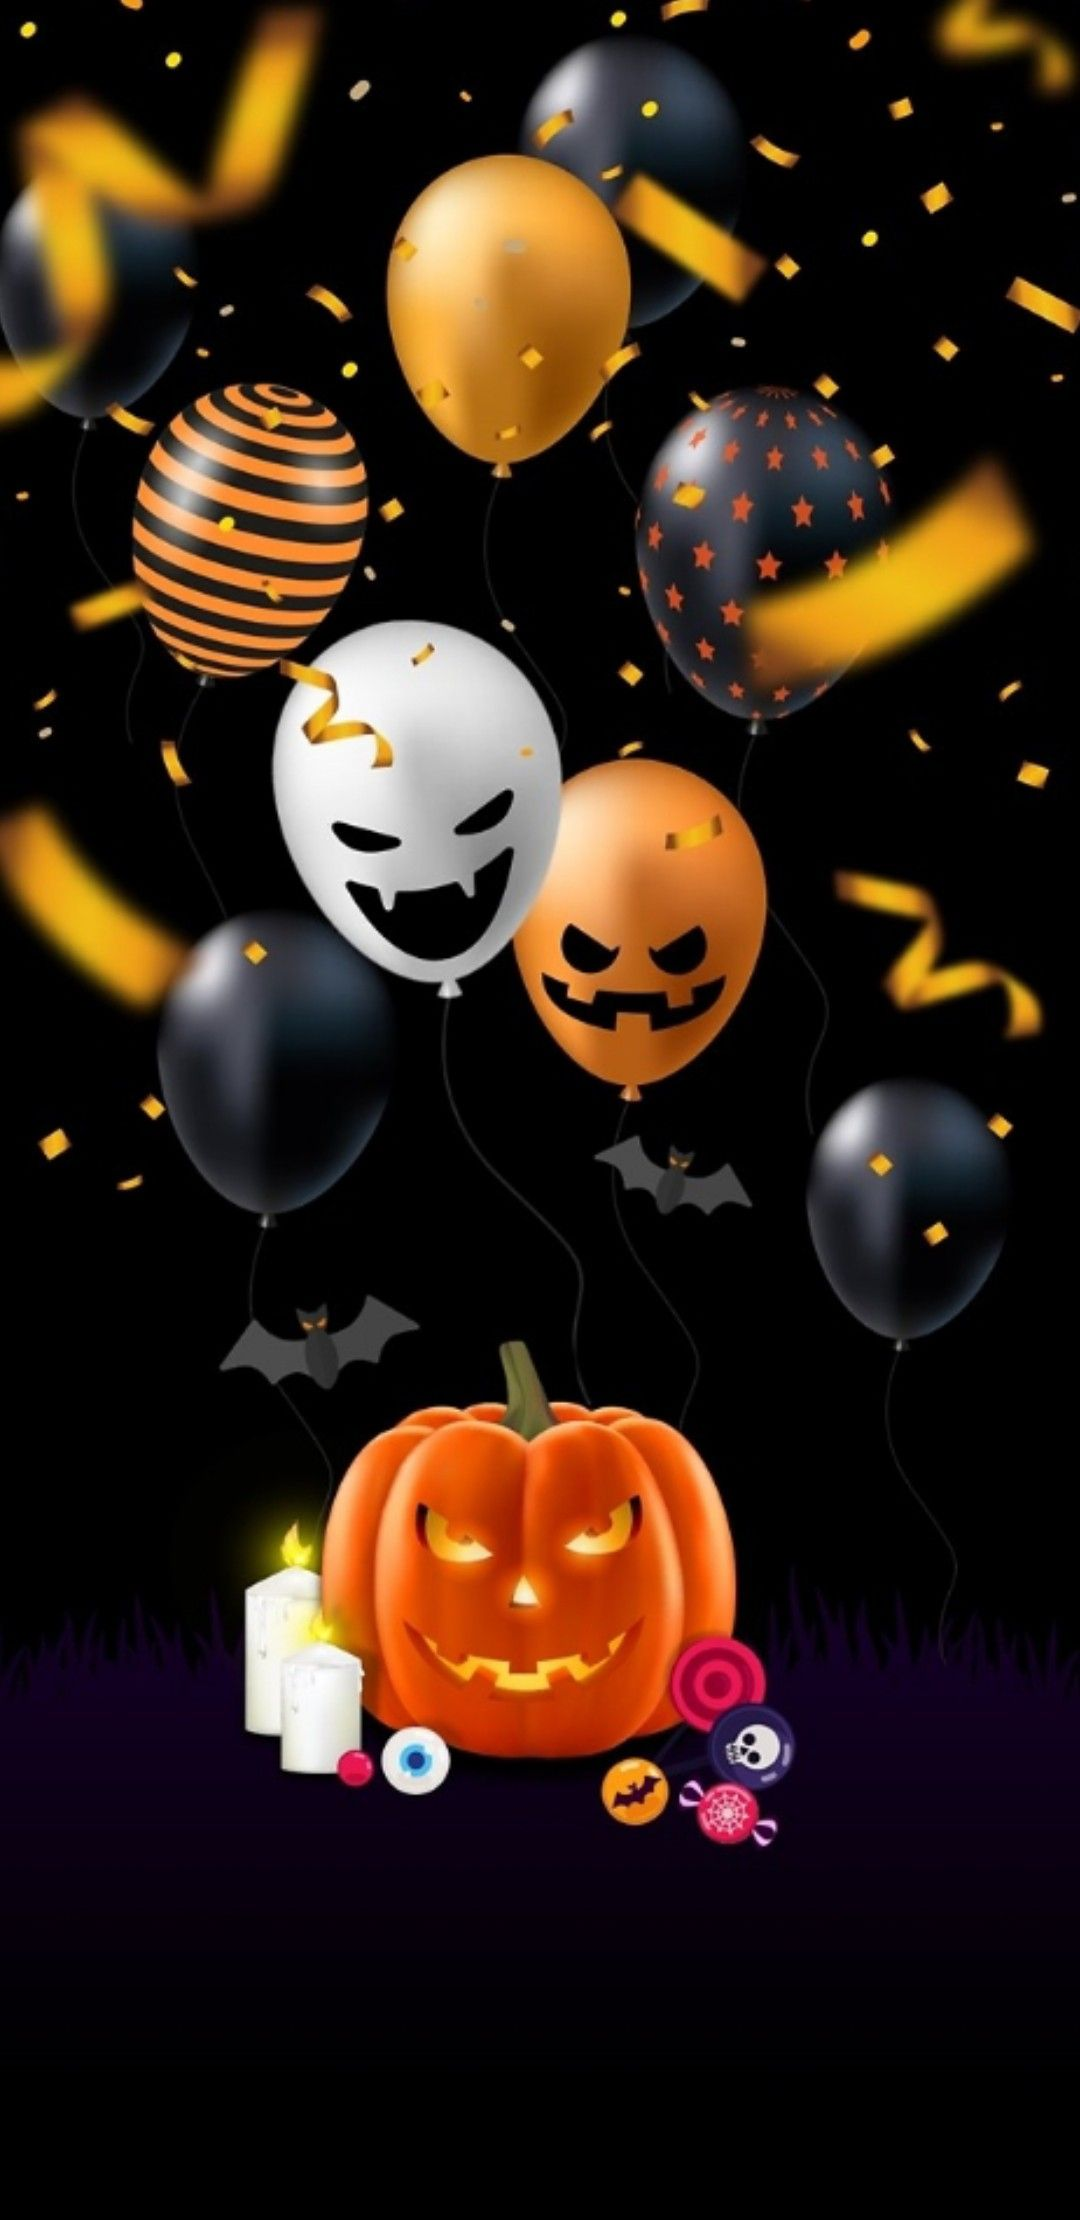 Wallpaper By Artist Unknown Autumn Phone Wallpaper Halloween Wallpaper Holiday Wallpaper